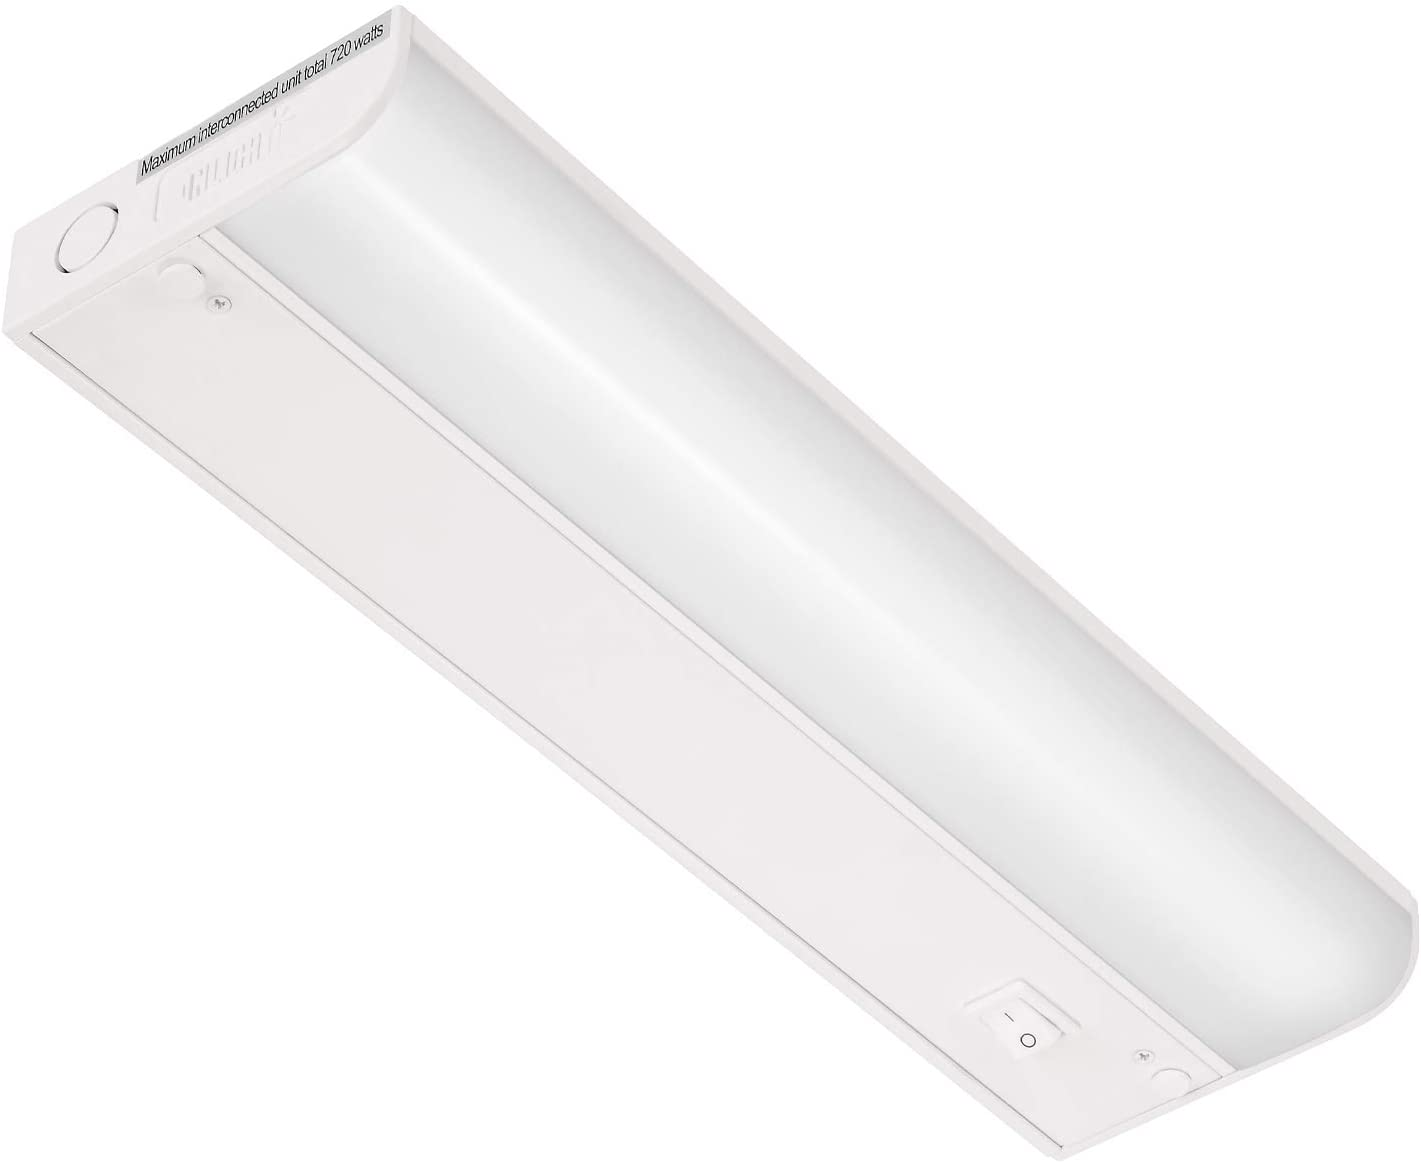 GetInLight Dimmable Hardwired Only Under Cabinet LED Lighting with ETL Listed, Soft White(3000k), Matte White Finished, 12 Inch, IN-0201-11-WH